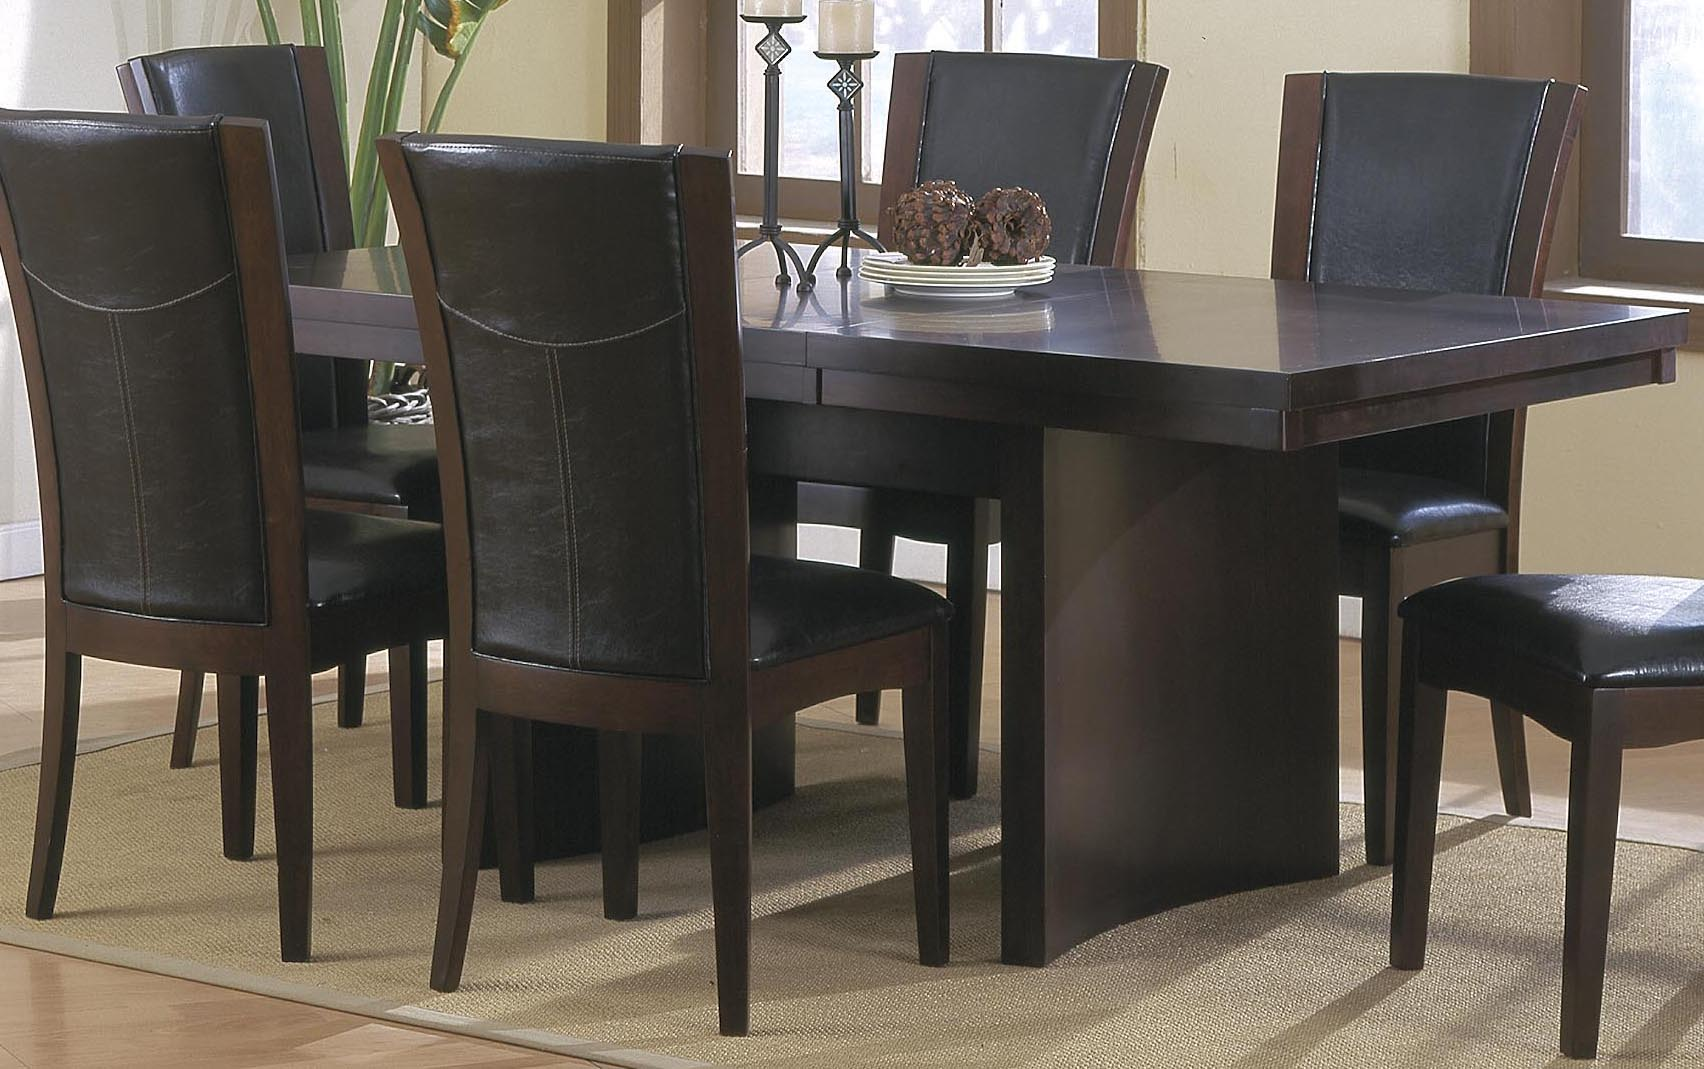 Homelegance Daisy Rectangular Extension Dining Table in